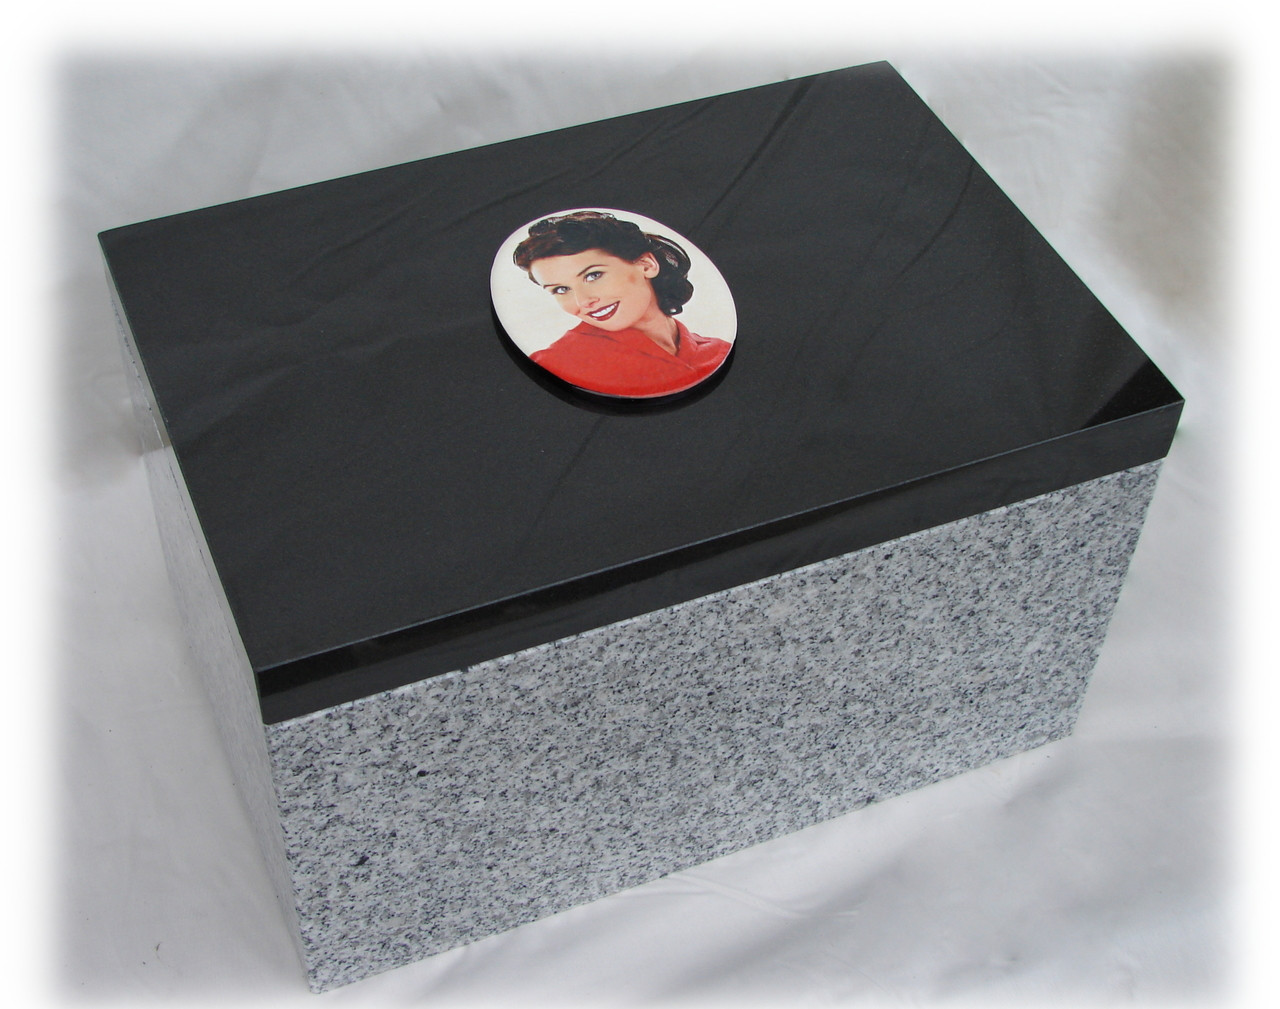 "China White Granite  Base Dimensions, 12"" long x 8"" wide x 6"" tall with cut out 5"" deep, ~1"" walls. Top Cove, LaserGrade MB Black Granite,  8"" x 12"" x 1"": Holds a live weight up to 270 Pounds."